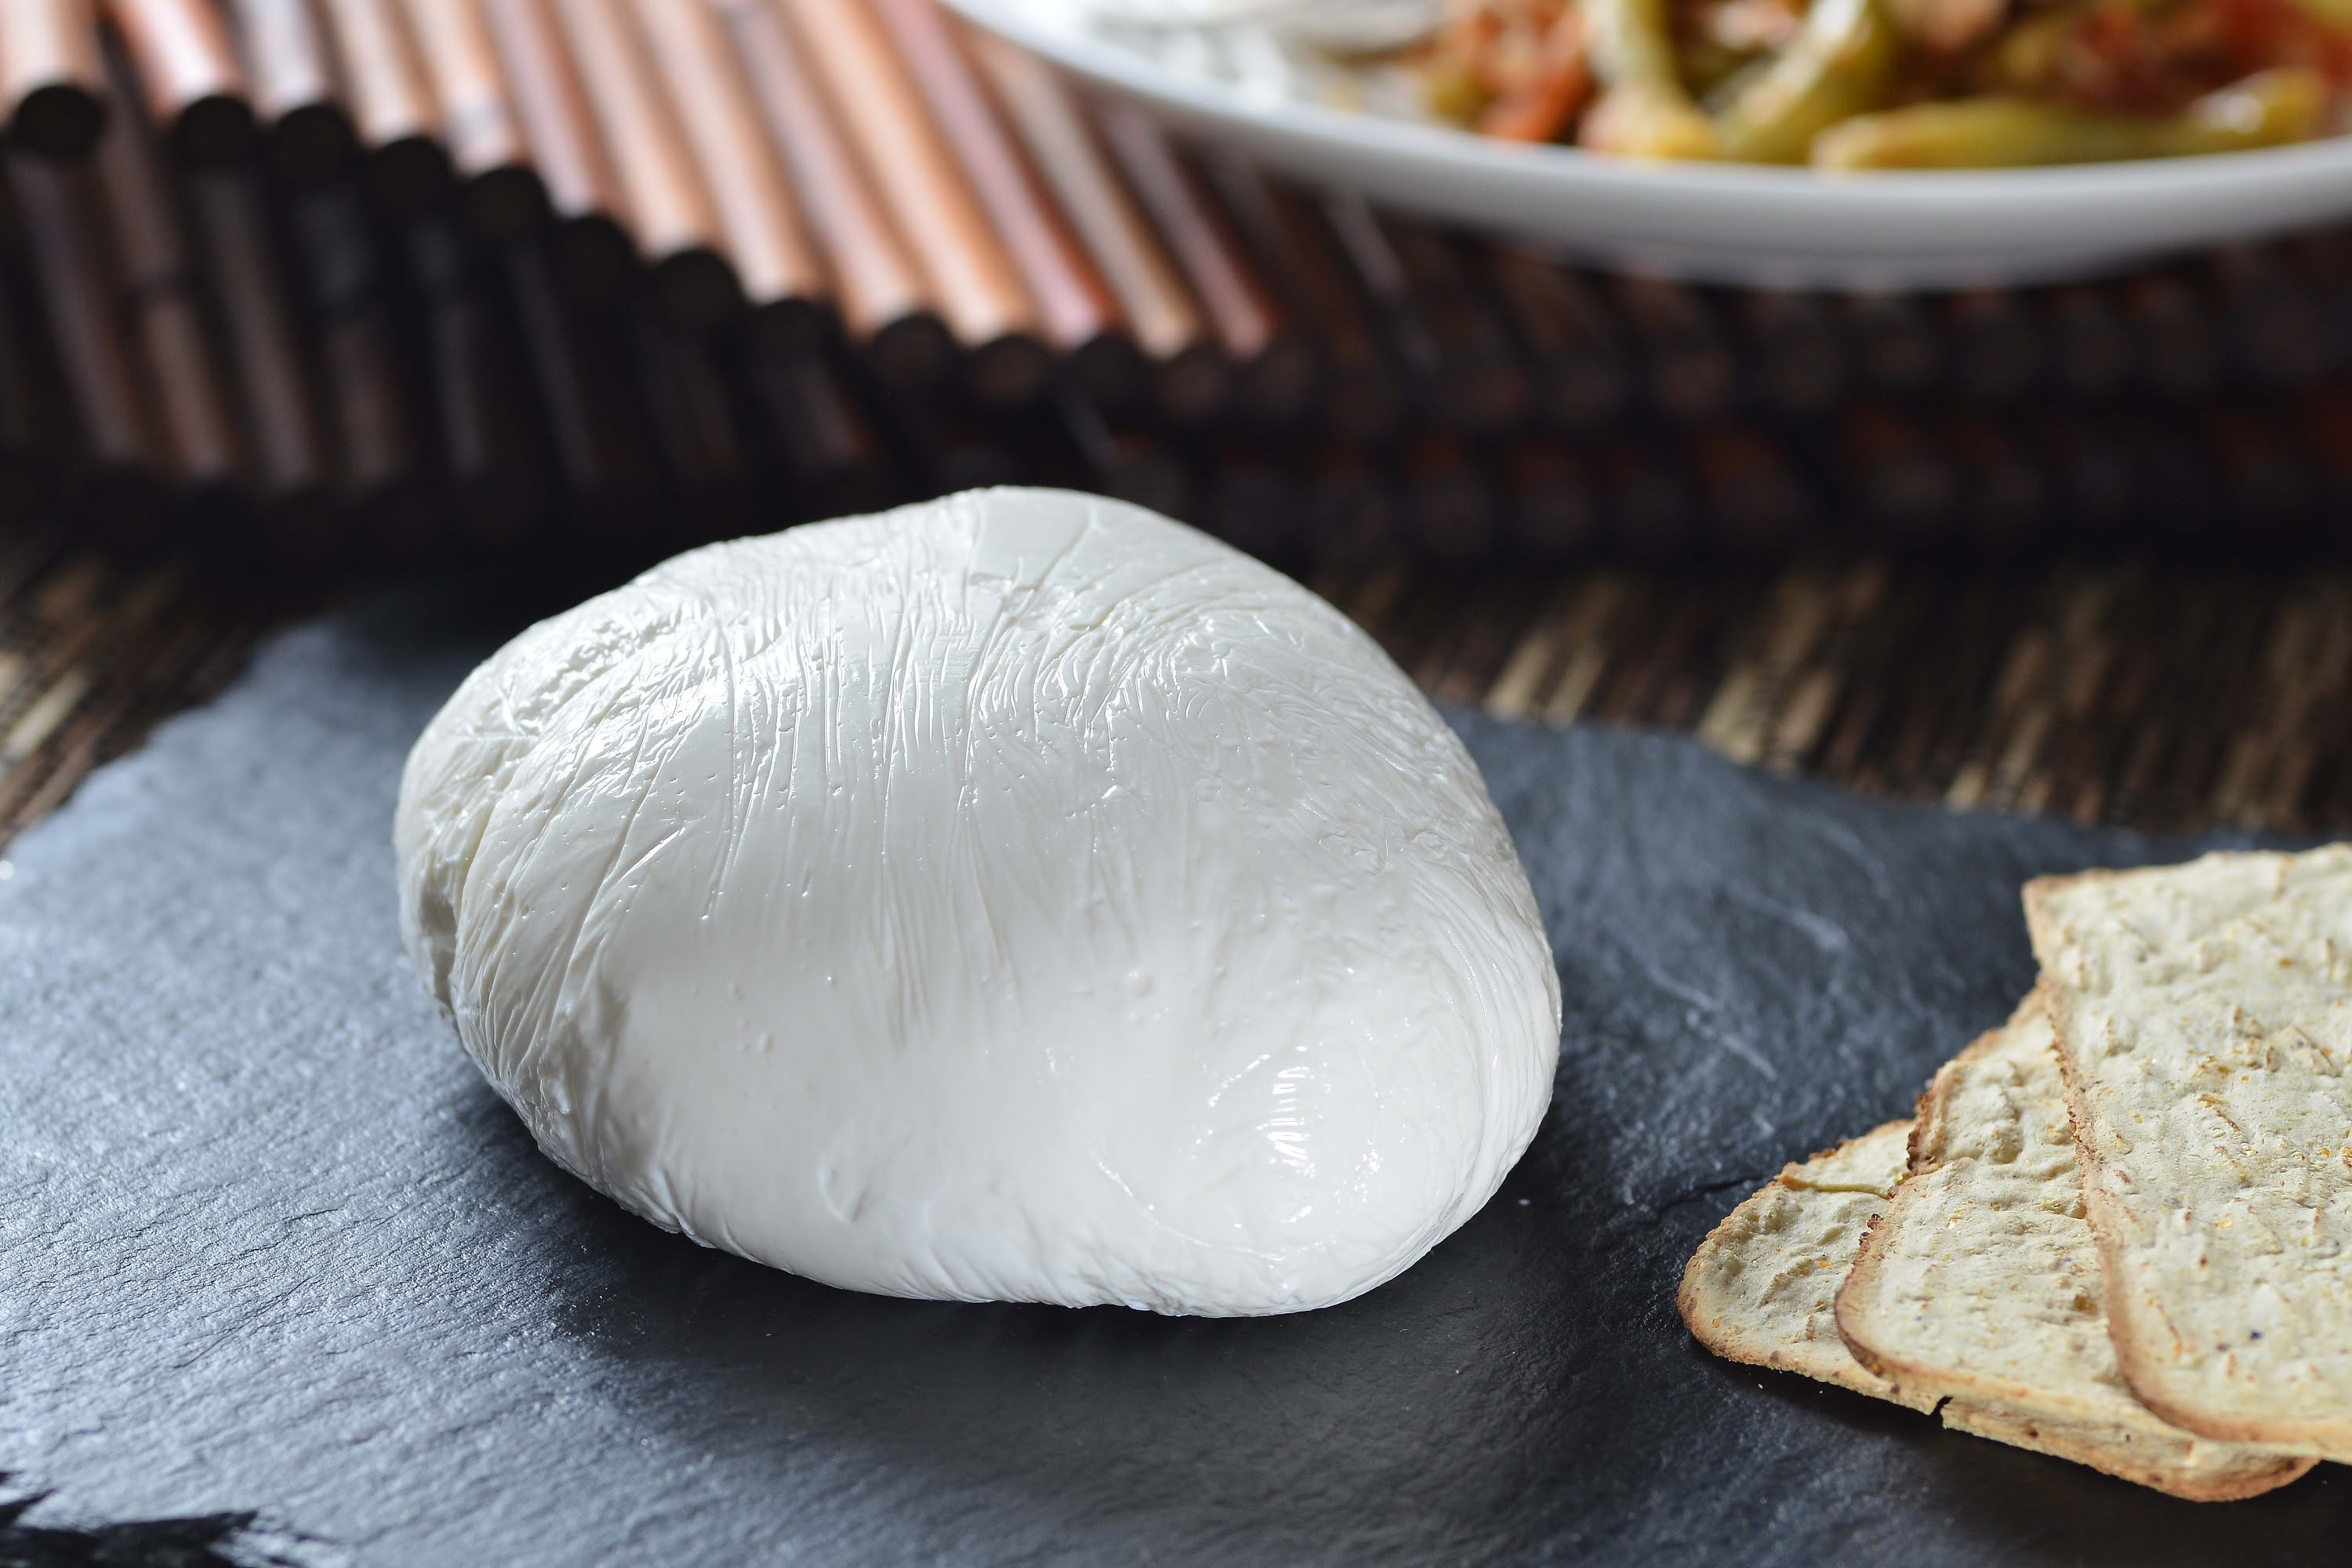 Queso Mozzarella casero - How to make mozzarella cheese at home